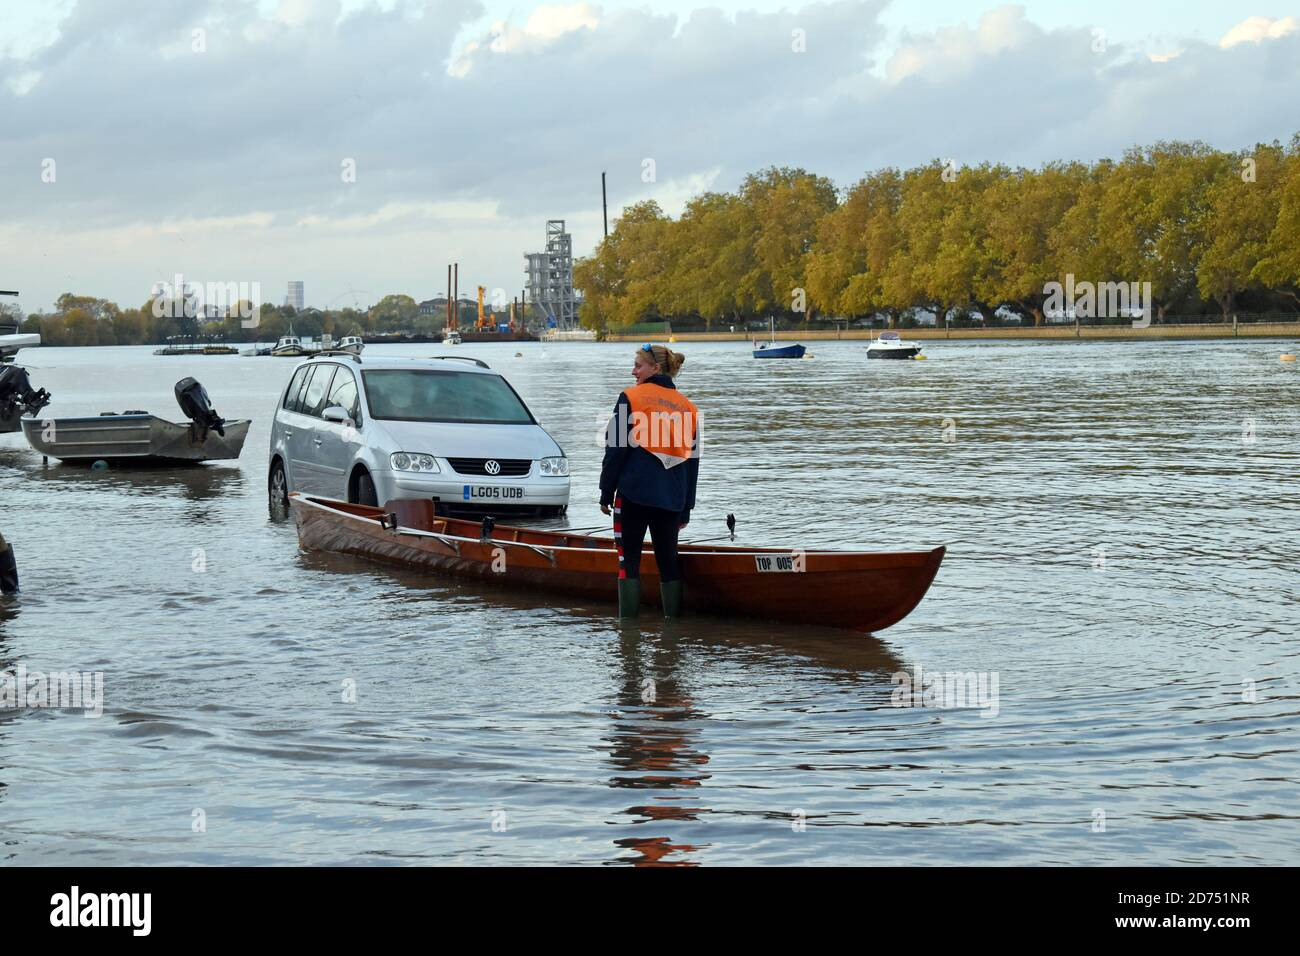 London, UK. 20th Oct, 2020. Unusually high spring tide on the Thames floods Putney Embankment road in front of rowing clubs. Credit: JOHNNY ARMSTEAD/Alamy Live News Stock Photo